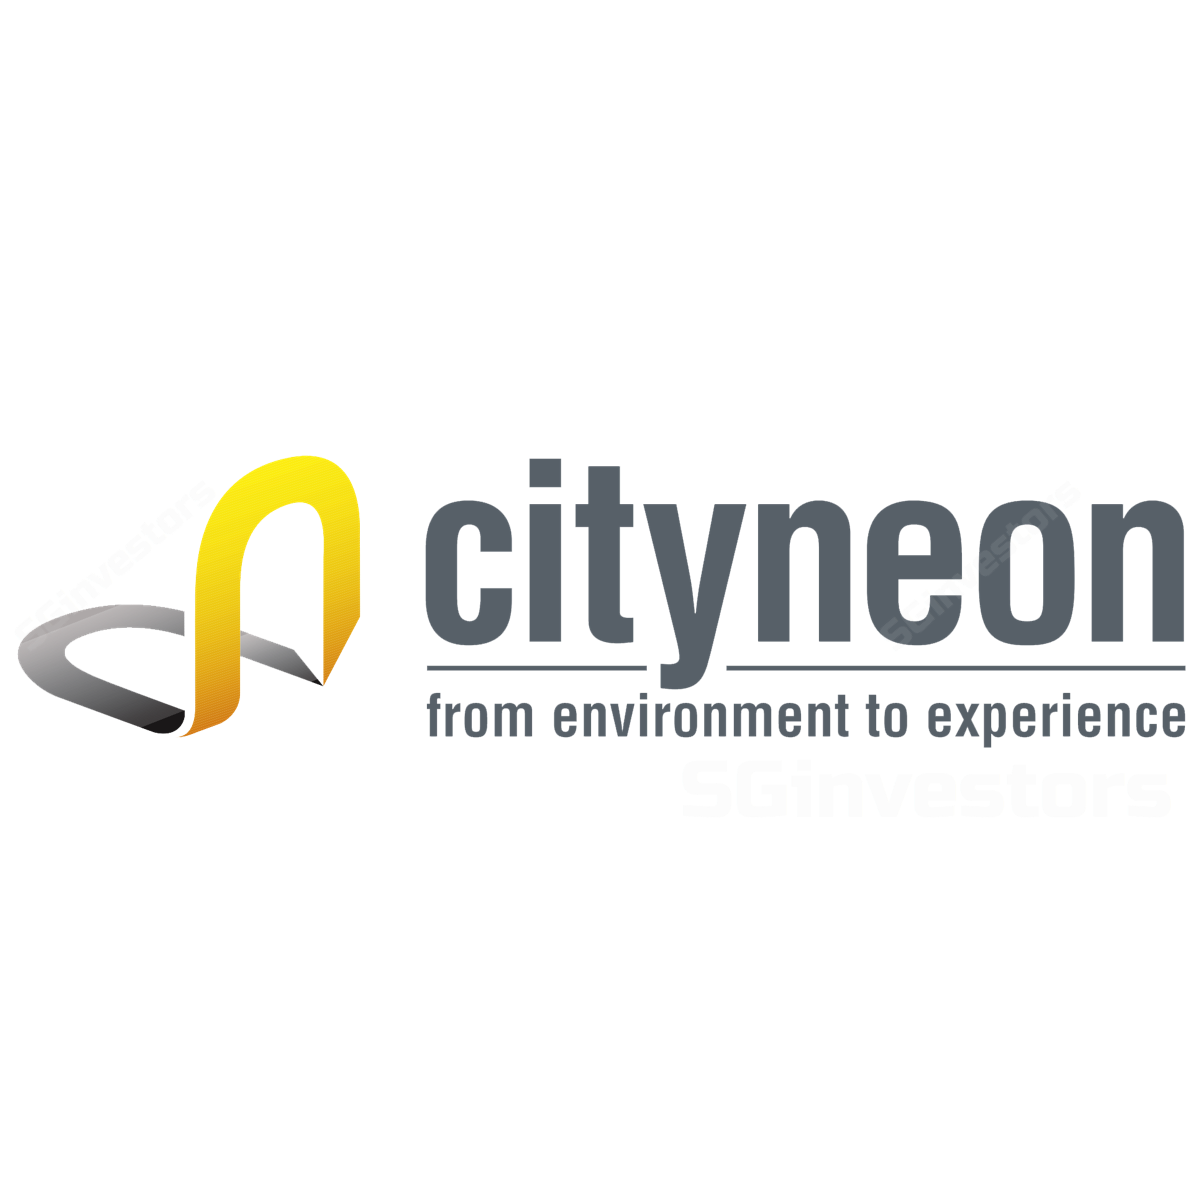 Cityneon Holdings - DBS Vickers 2018-02-28: Marvelous Transformation